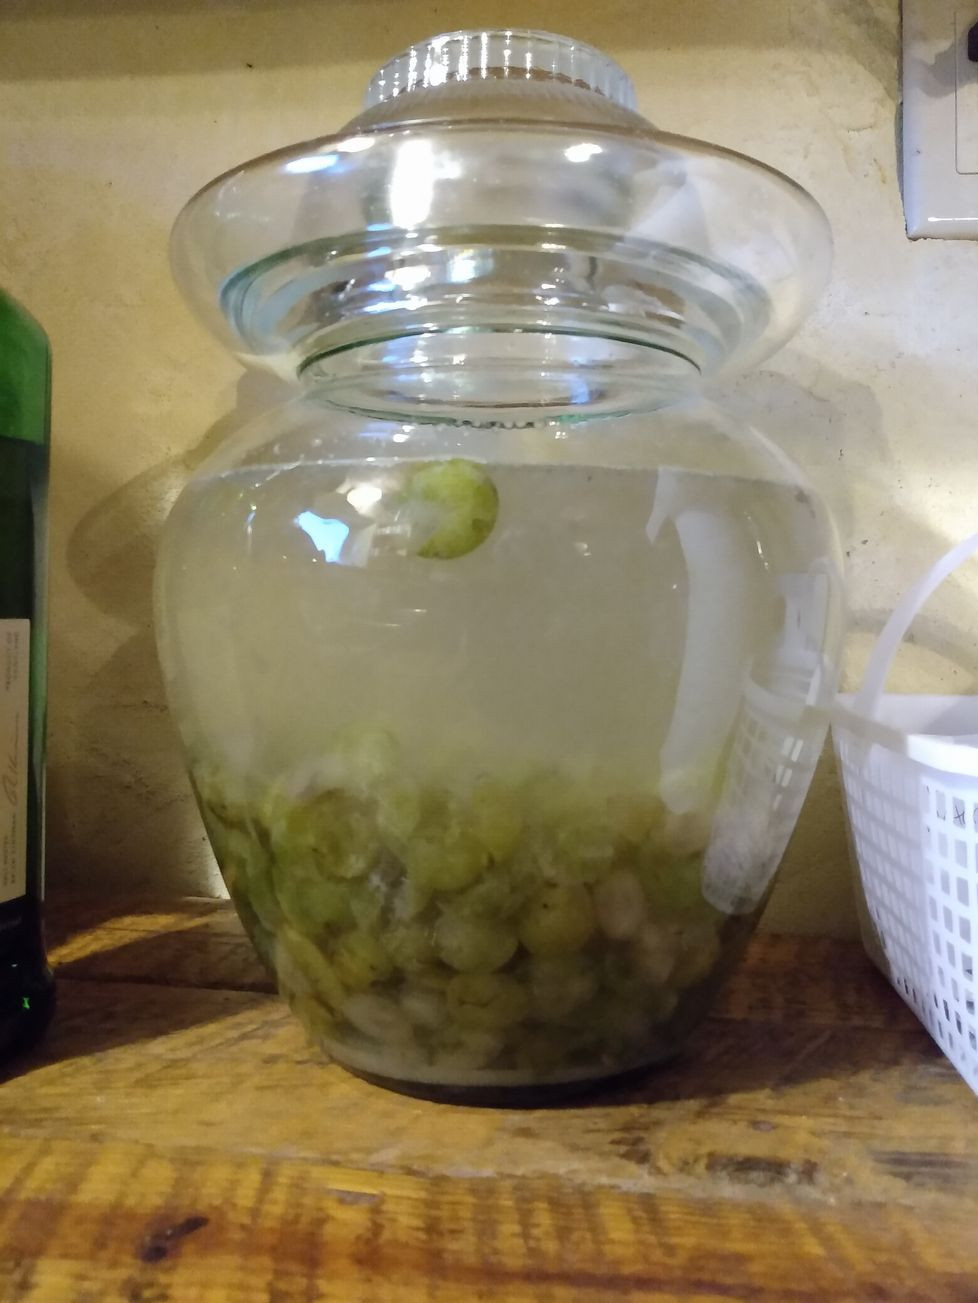 Grapes fermenting into wine.